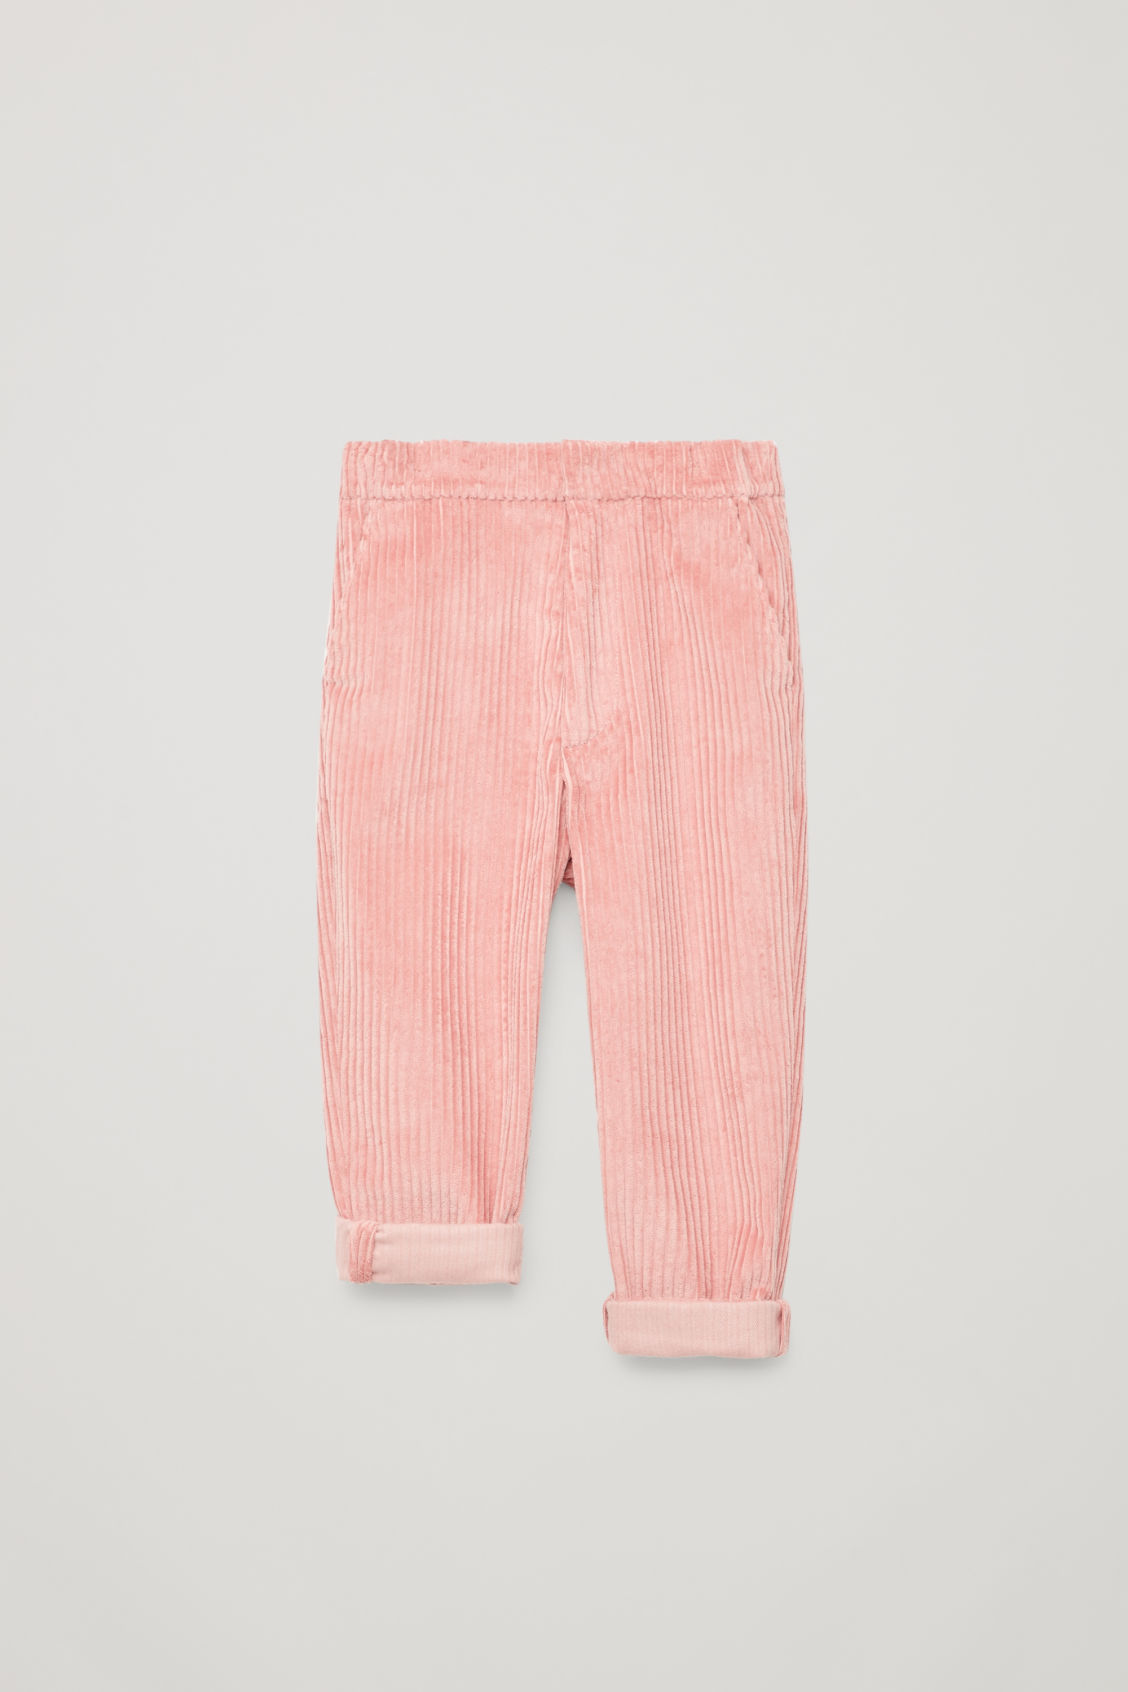 Detailed image of Cos corduroy trousers in pink